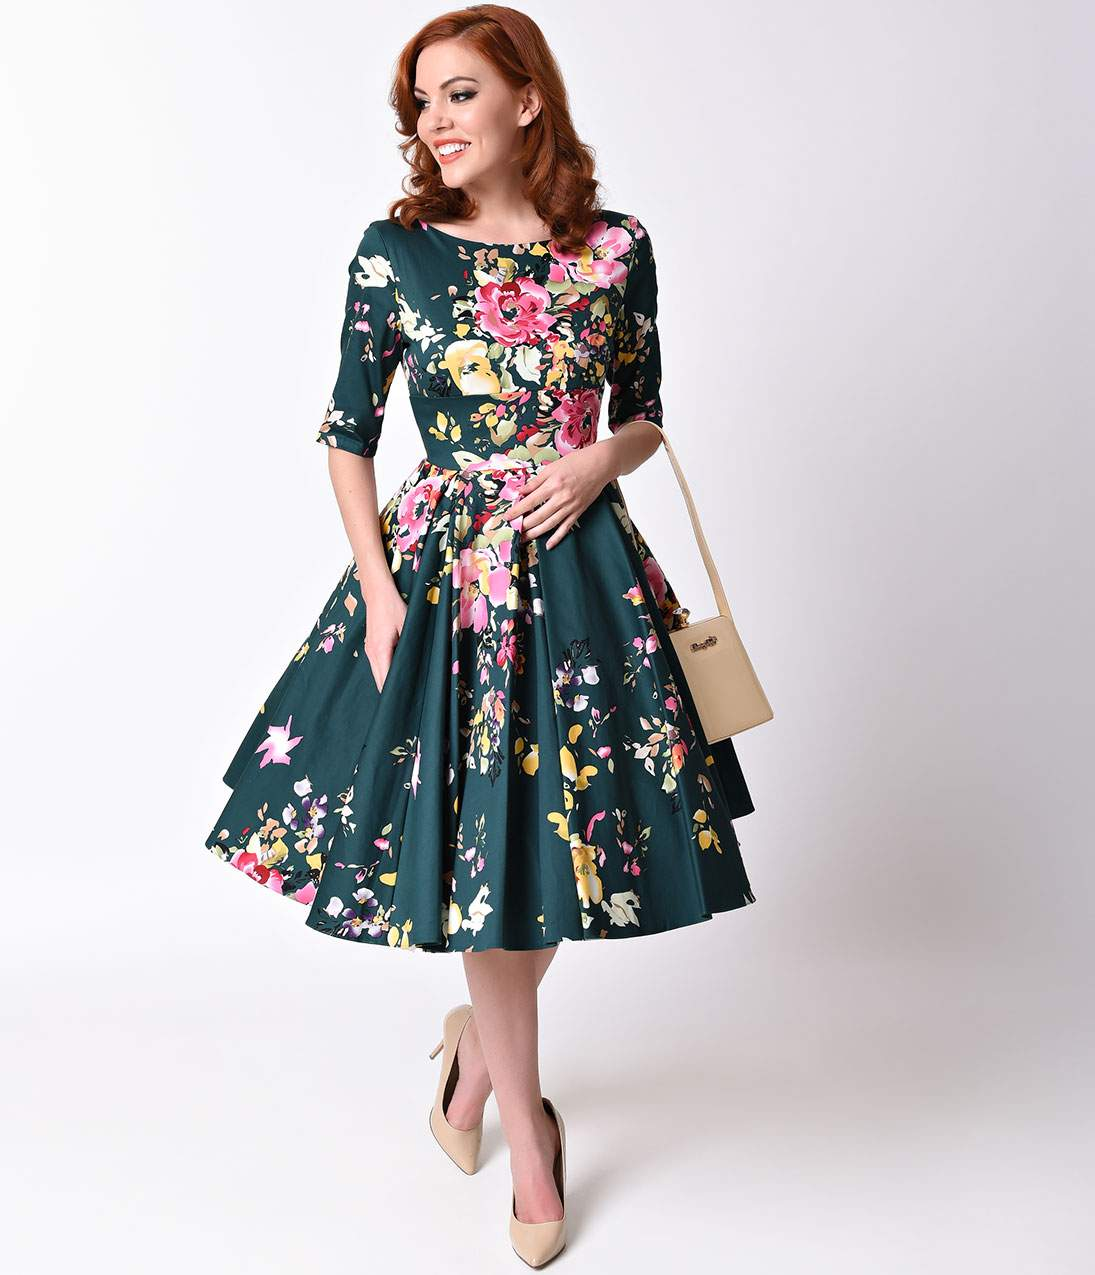 1950s Swing Dresses | 50s Swing Dress Vintage Deep Green Seville Floral Half Sleeve Hepburn Swing Dress $188.00 AT vintagedancer.com